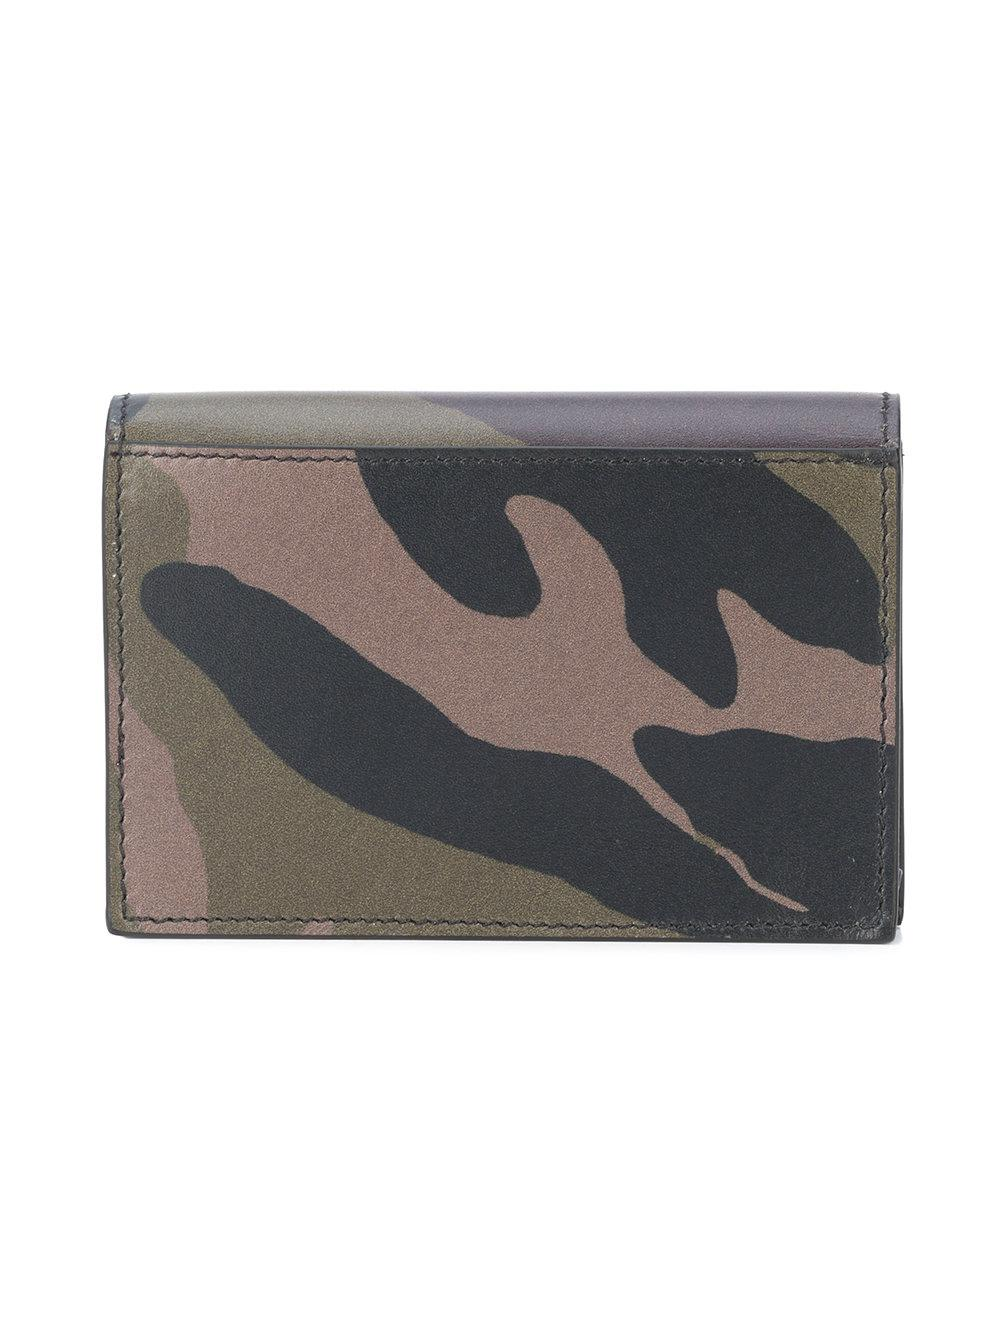 Lyst givenchy camouflage print business card case in black print business card case lyst view fullscreen reheart Images